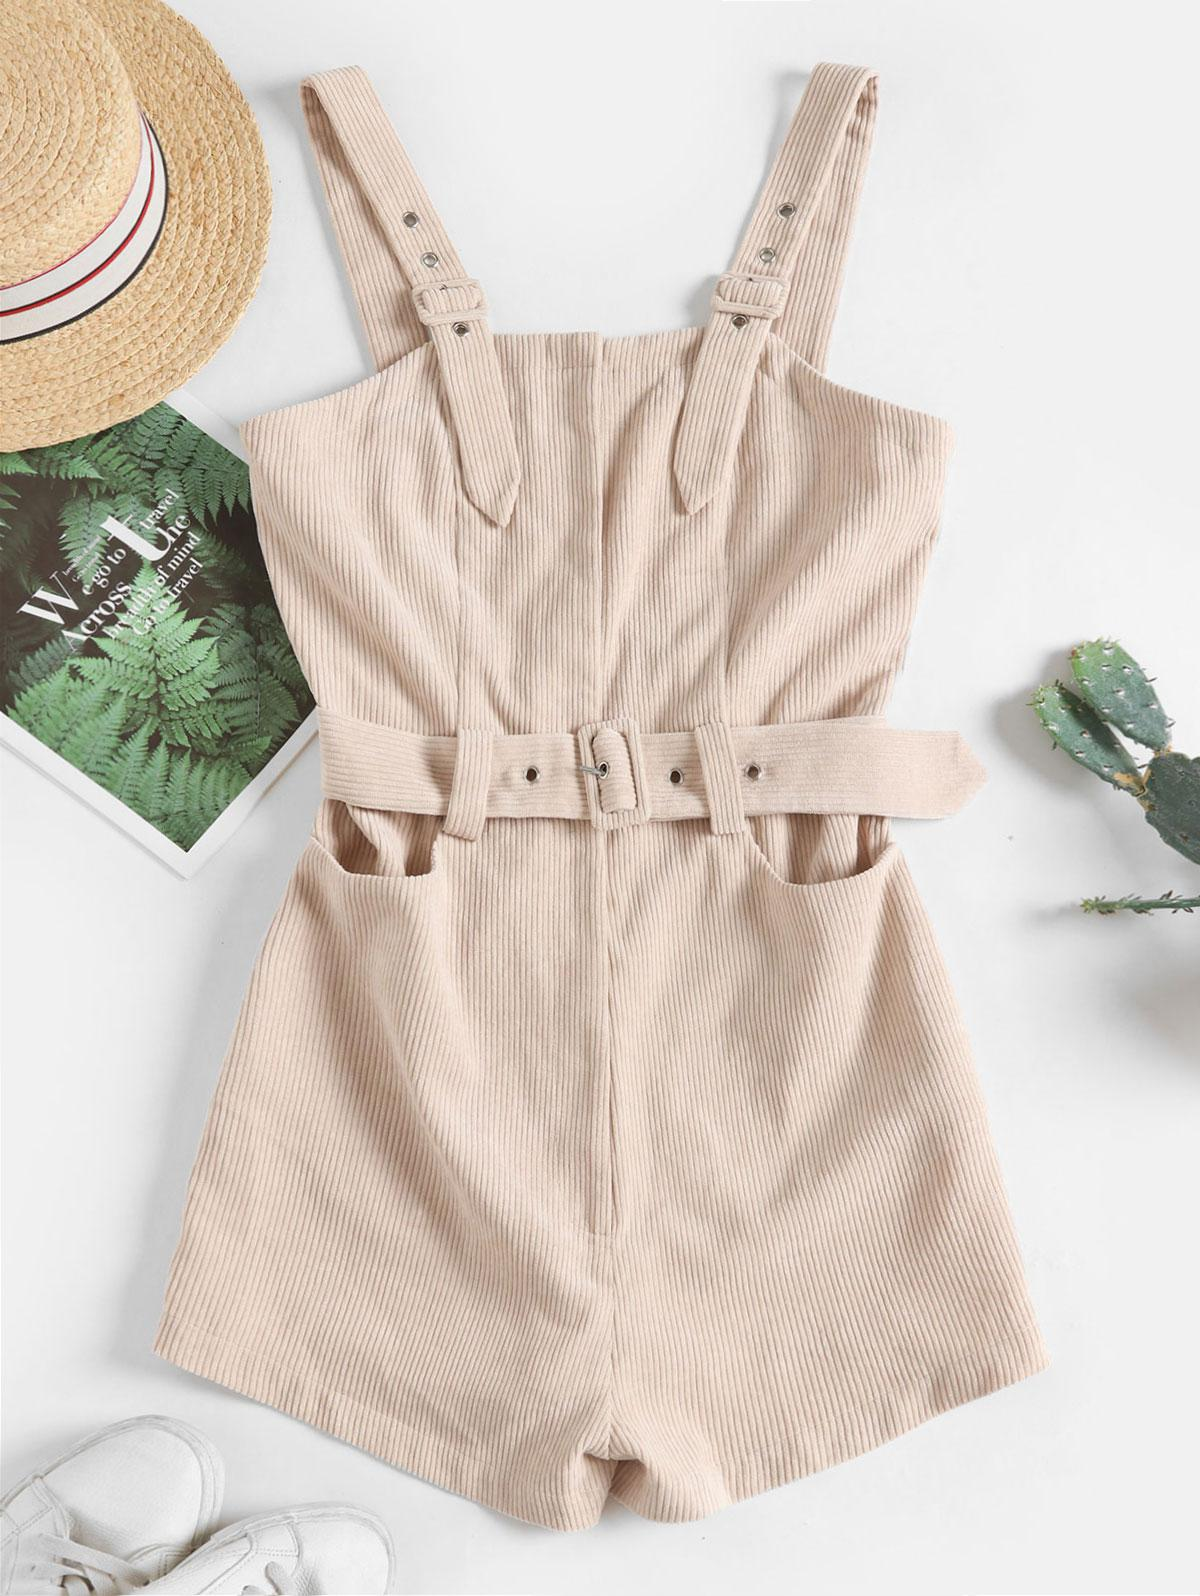 ZAFUL Solid Color Belted Corduroy Pinafore Romper фото